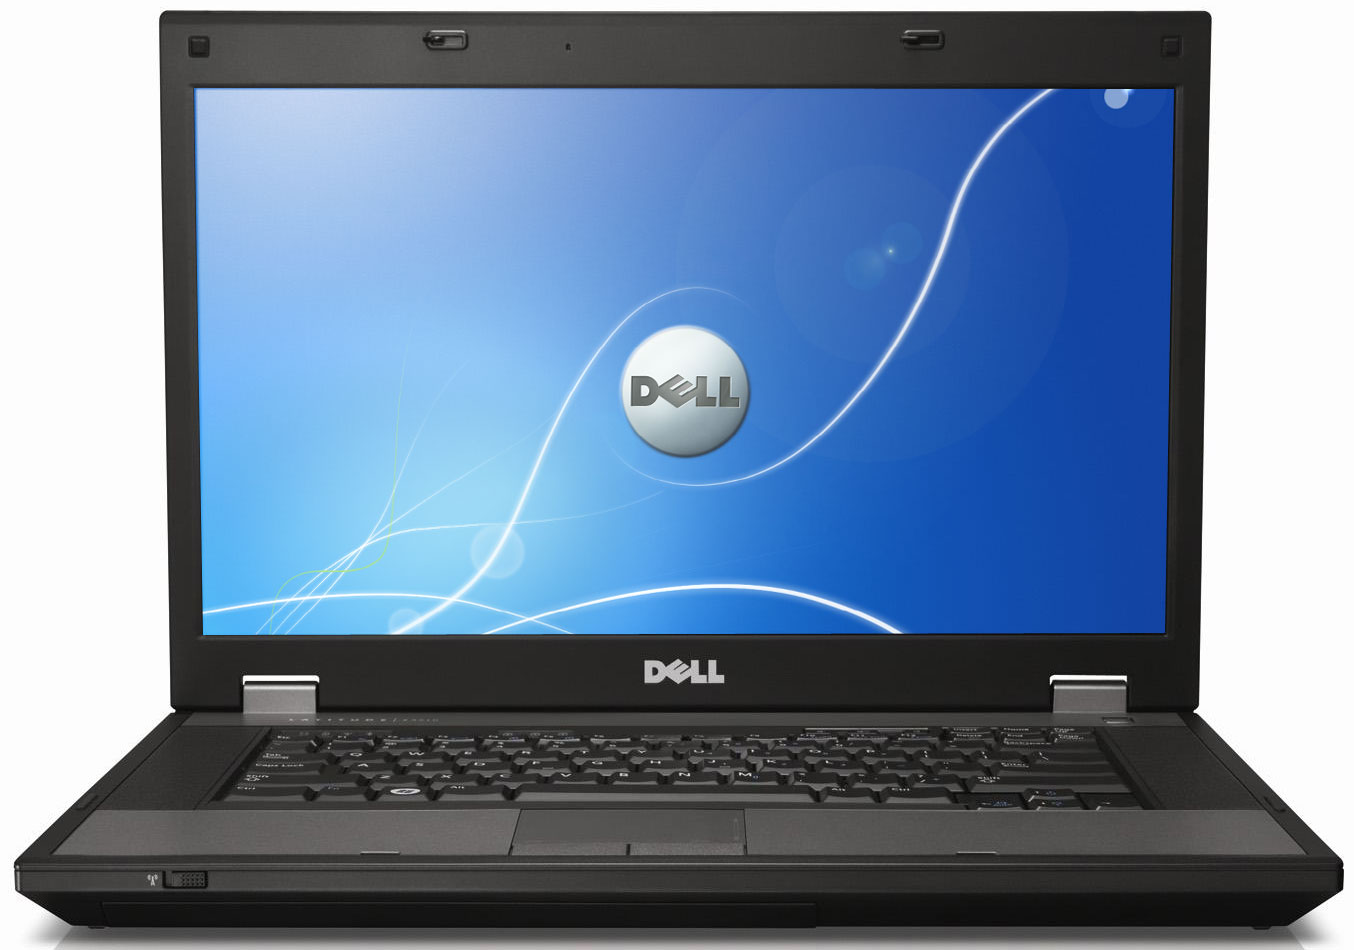 dell online 1,694 reviews for dell read real customer ratings and reviews or write your own.